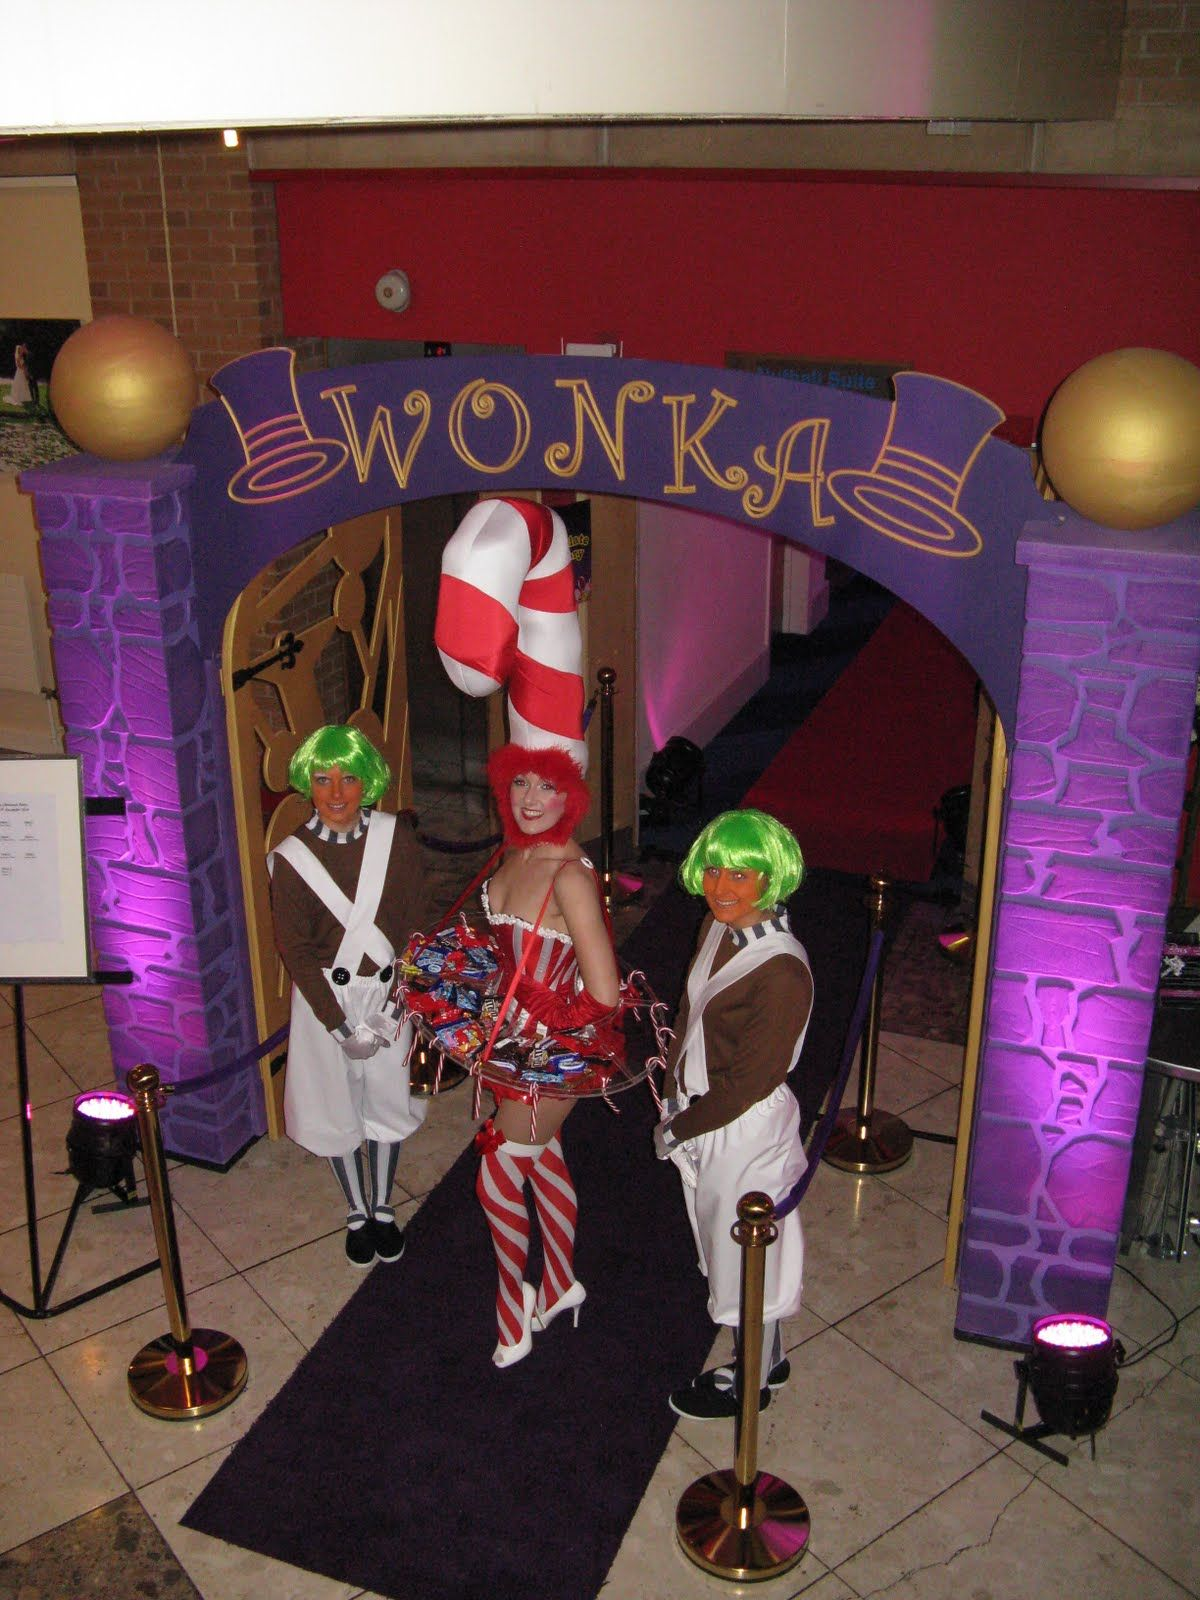 Party Prop Entrance Latest Event News Weddings And